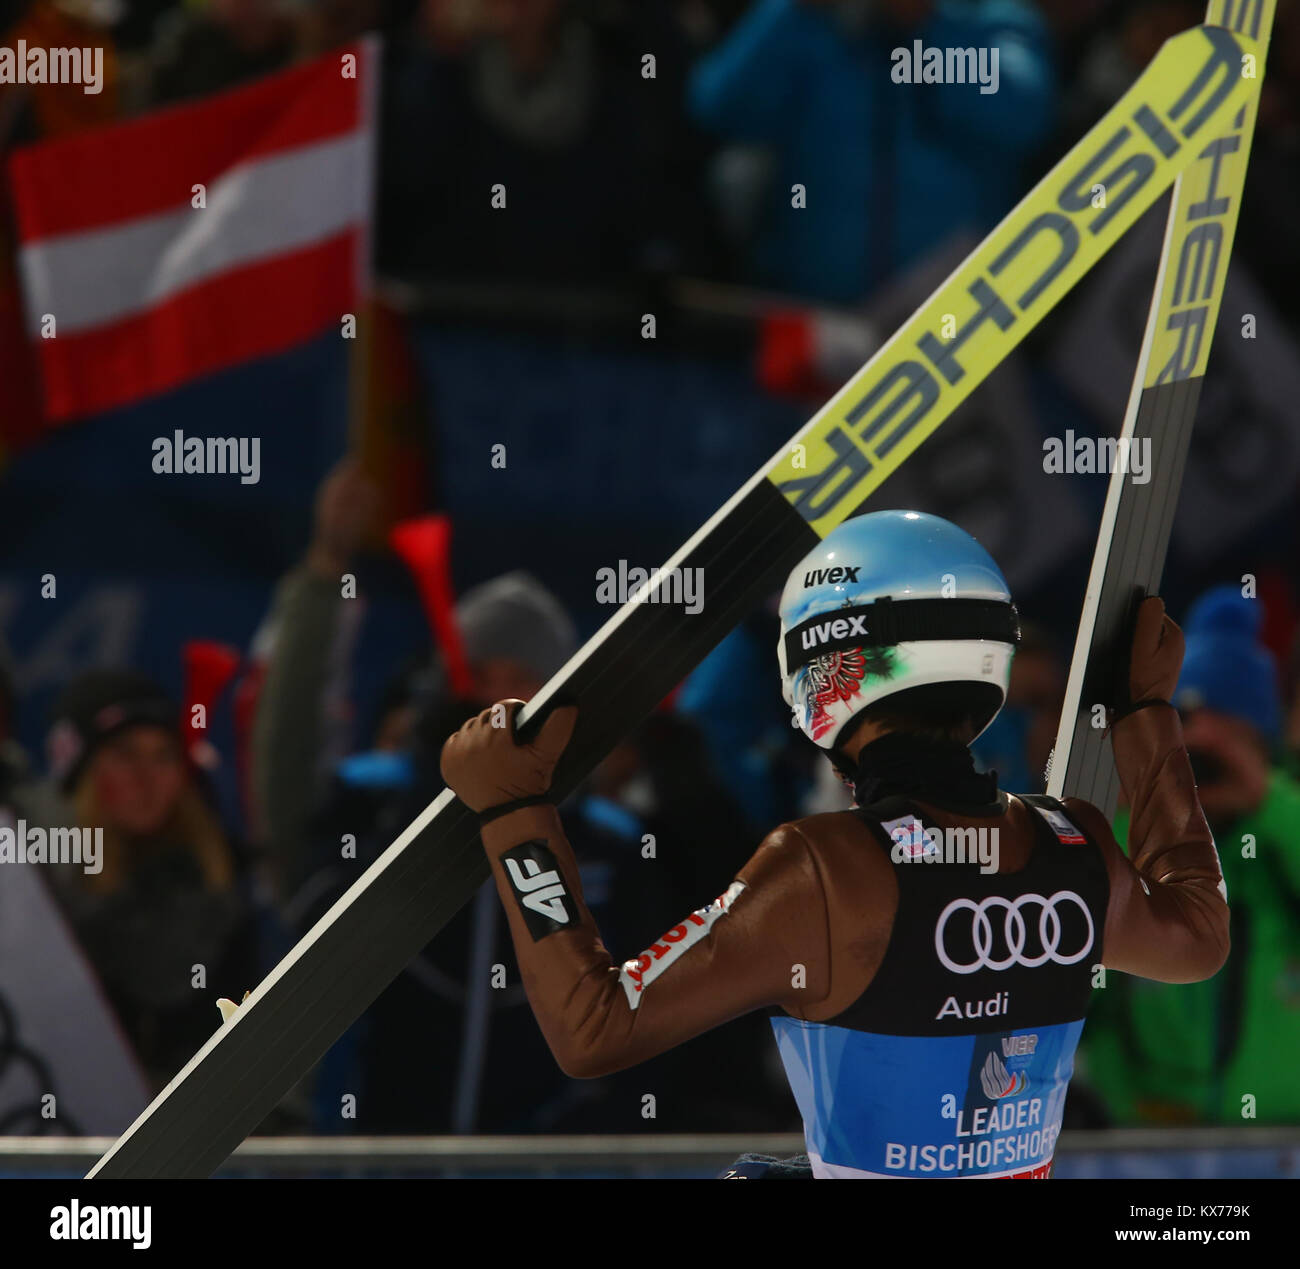 Bischofshofen, Austria. 06th, Jan 2018. Poland's Kamil Stoch, celebrates his victory front of supporters at - Stock Image